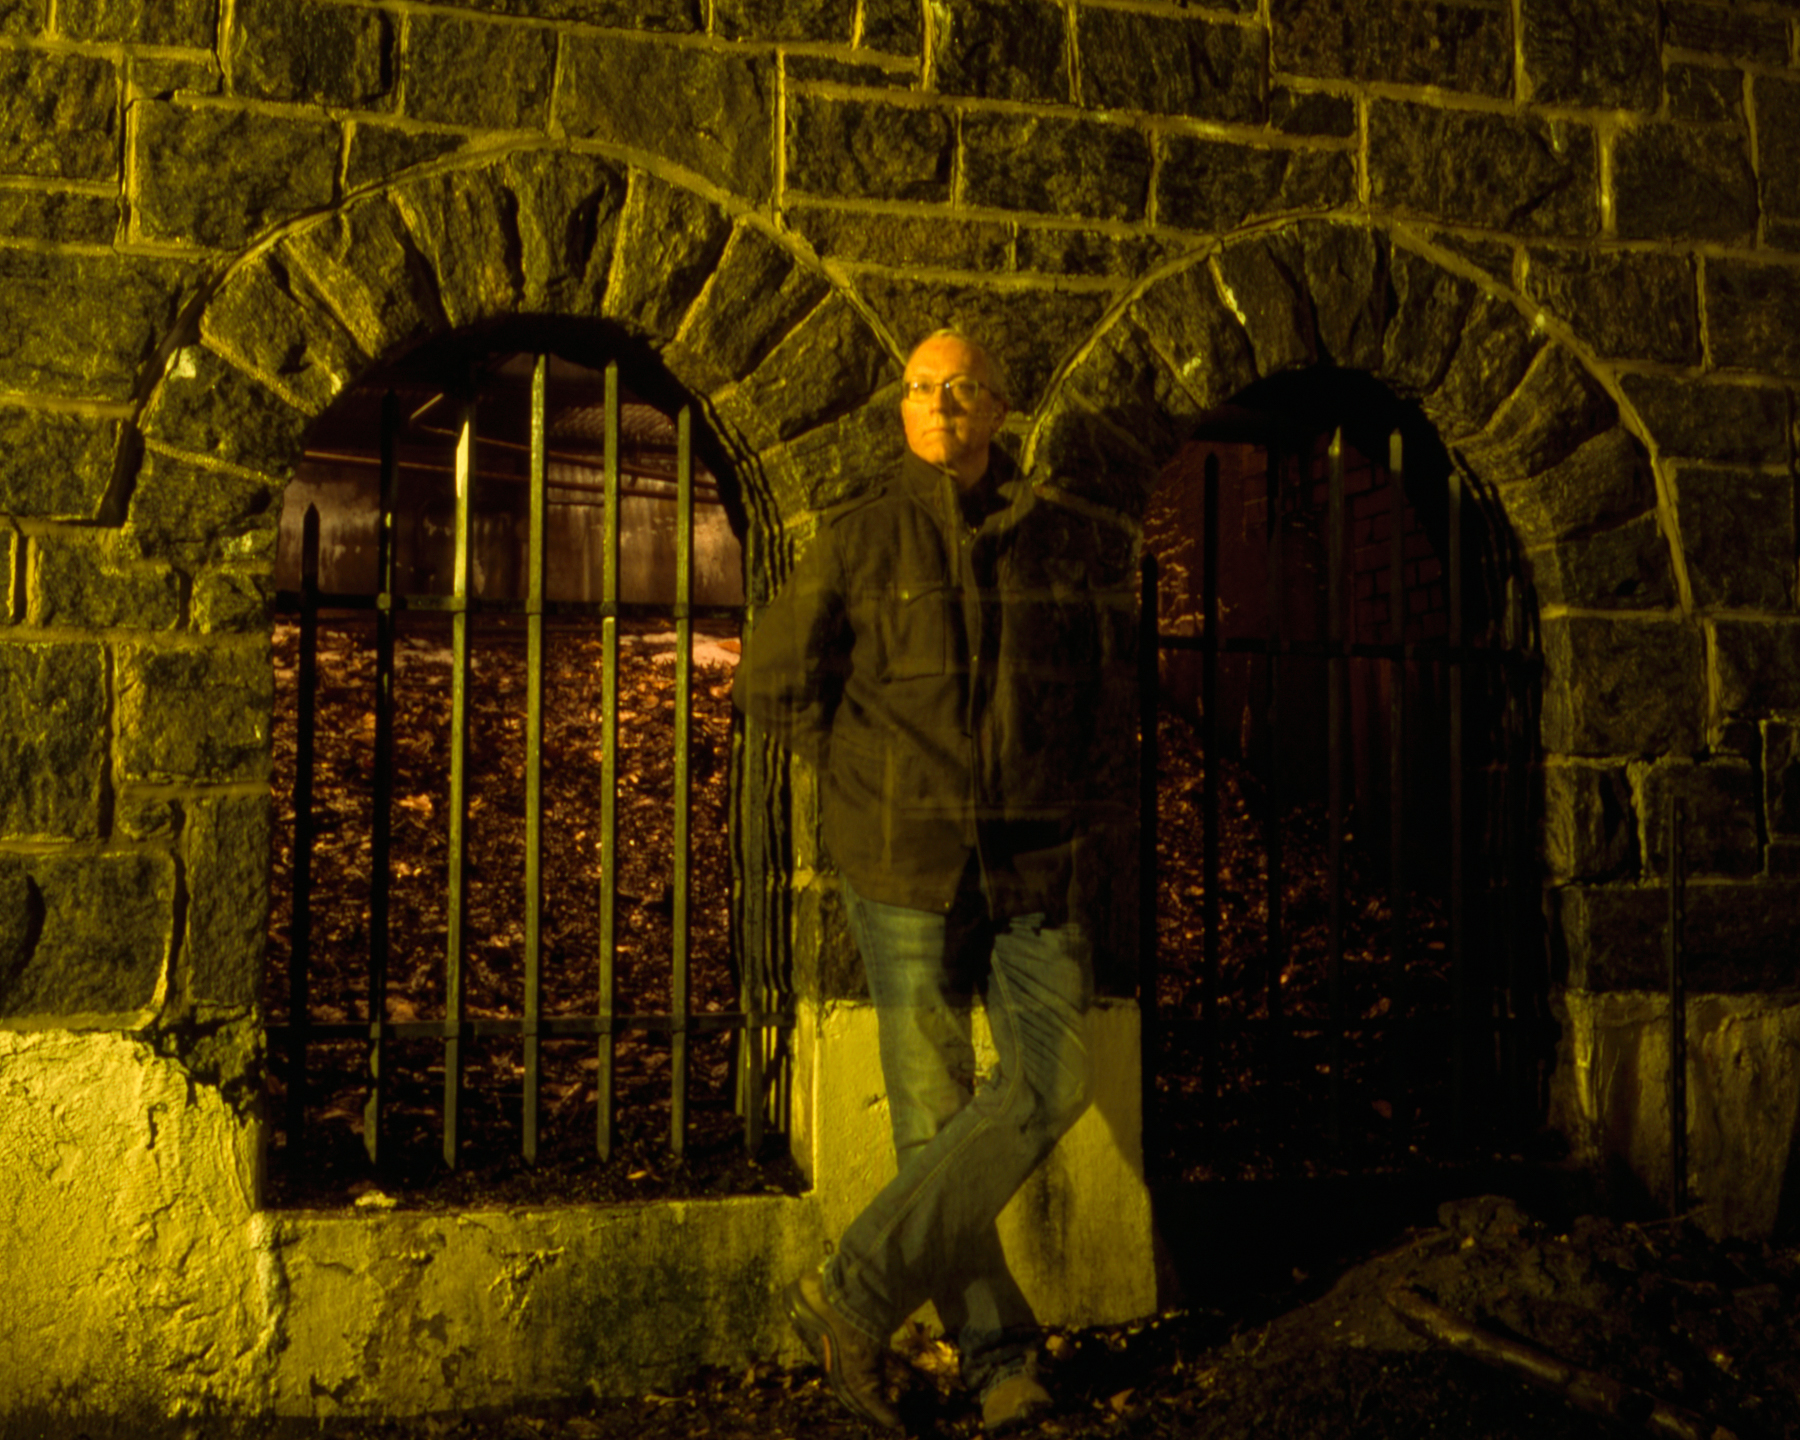 Colin Poellot  Shot March 9, 2019 at night in Riverside Park, New York, NY with a Rolleiflex Automat on Fuji Provia 100 film. Bulb time 60s exposure.  The last few years of my life have seen tremendous change, both good and bad. I've lost a few good friends to addiction and disease, moved 3 times, strengthened some relationships and severed others, adopted a rescue dog, and traveled to some new places. I'm constantly reminded of how transitory life is, so my favorite style of self portrait somewhat reflects that. Stepping in and out of the frame of a long exposure to create an impression, but not a strong one, shows how we fade in and out of our environments.This shot is in front of a stone enclosure that houses lighting to illuminate Riverside Church at night. I walk by it every day with my dog and it took me a month to figure out what it was for!